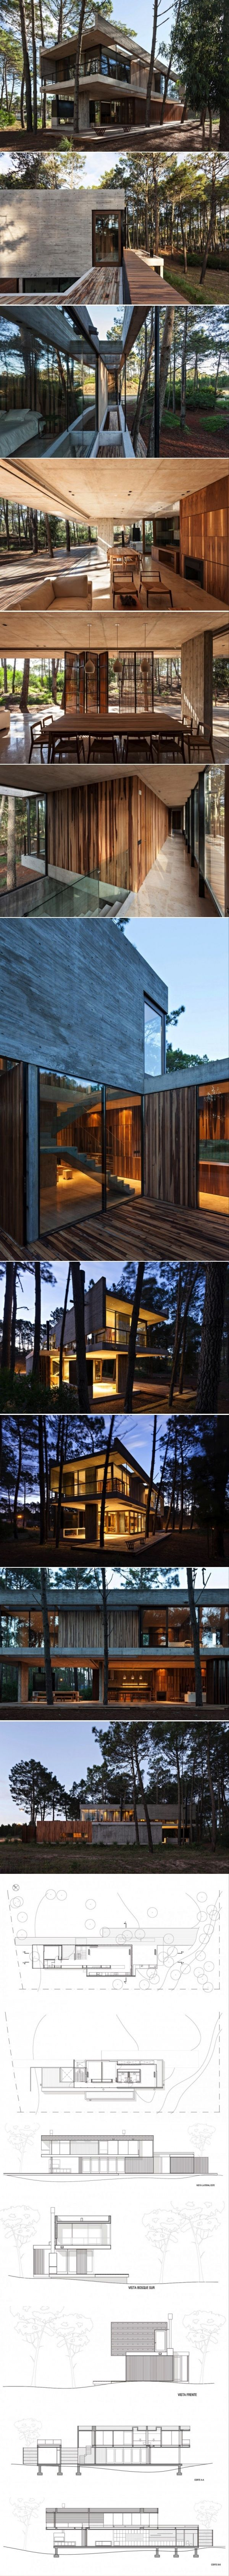 Marino Pinamar is a private home located in Pinamar, Argentina.  The 4,844-square-foot home was designed by ATV arquitectos in 2014.